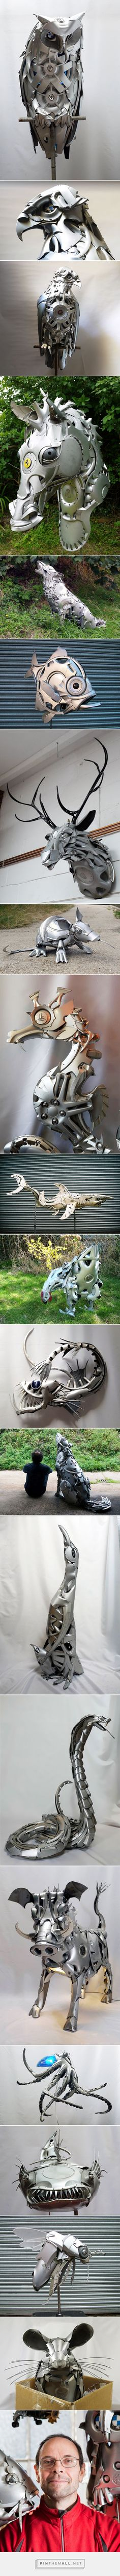 Artist Recycles Old Hubcaps Into Stunning Animal Sculptures | Bored Panda - created via http://pinthemall.net